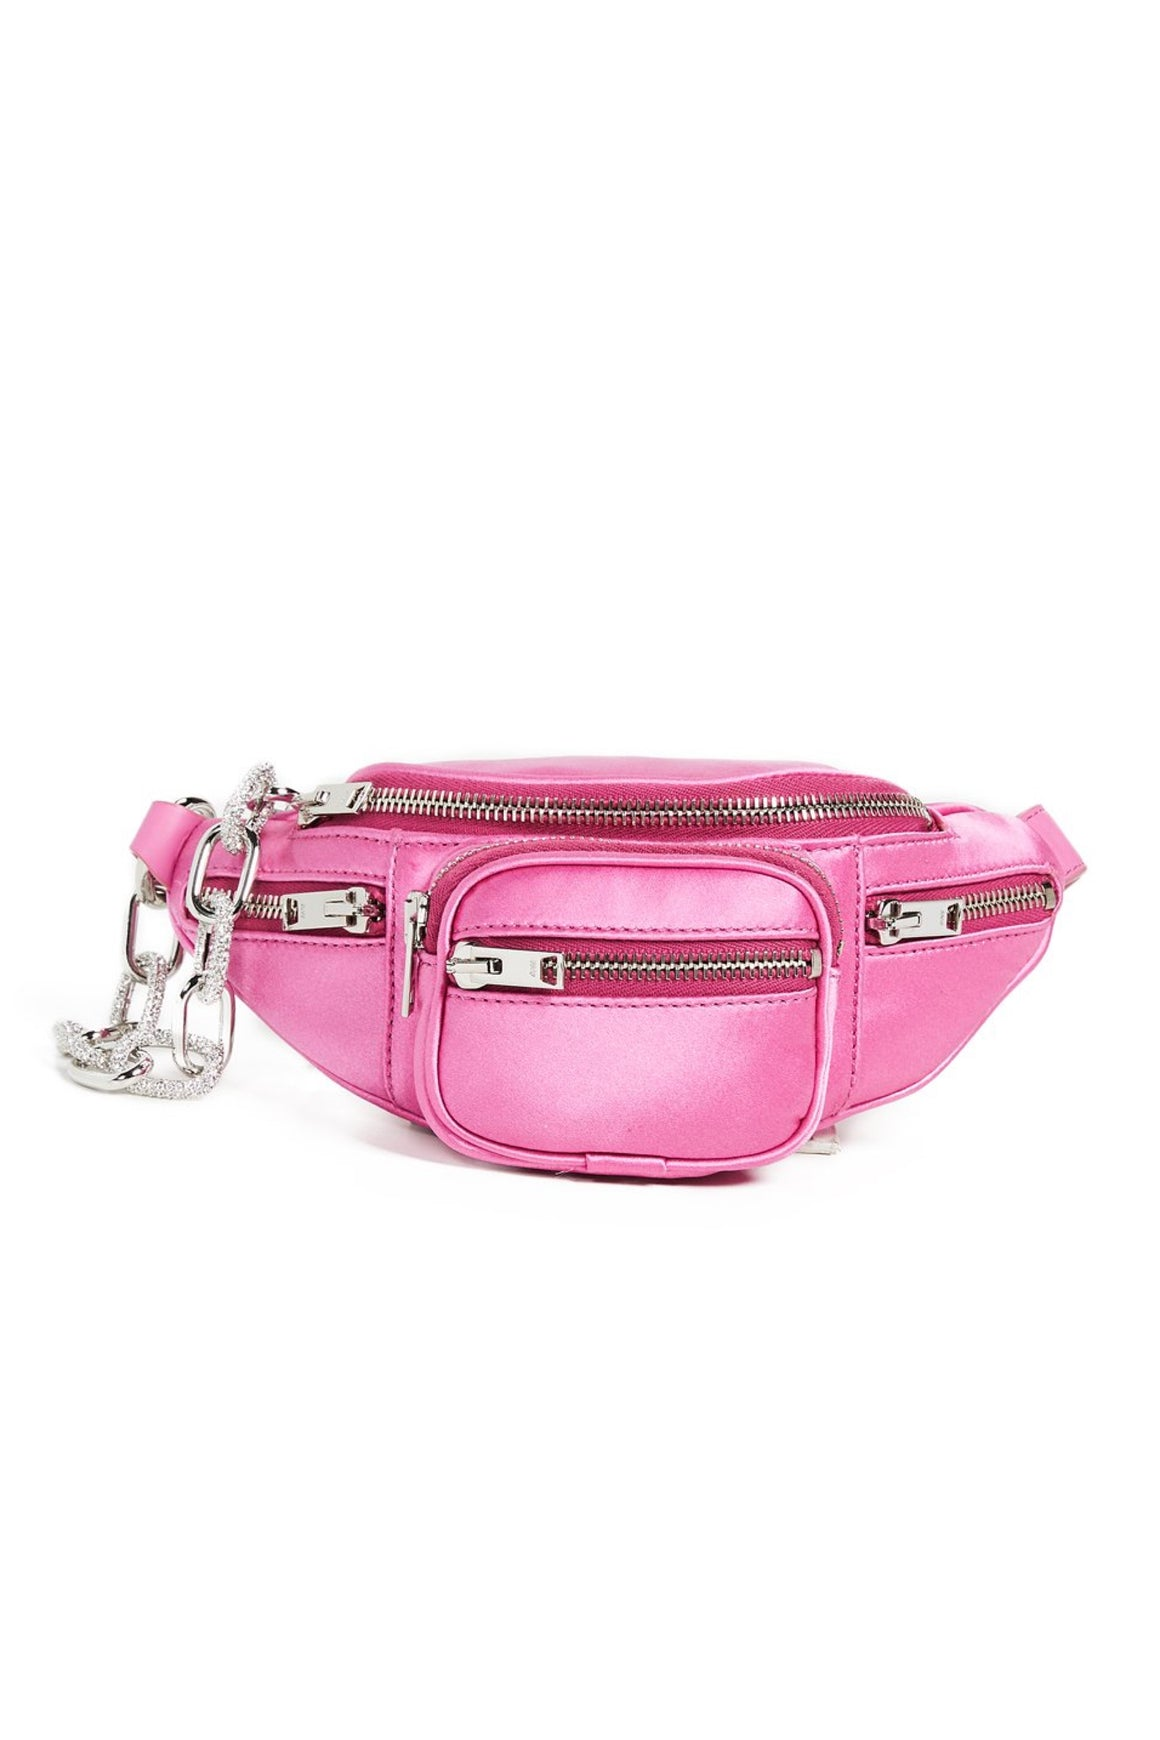 Alexander Wang Attica Mini Convertible Multi-Pocket Belt Bag